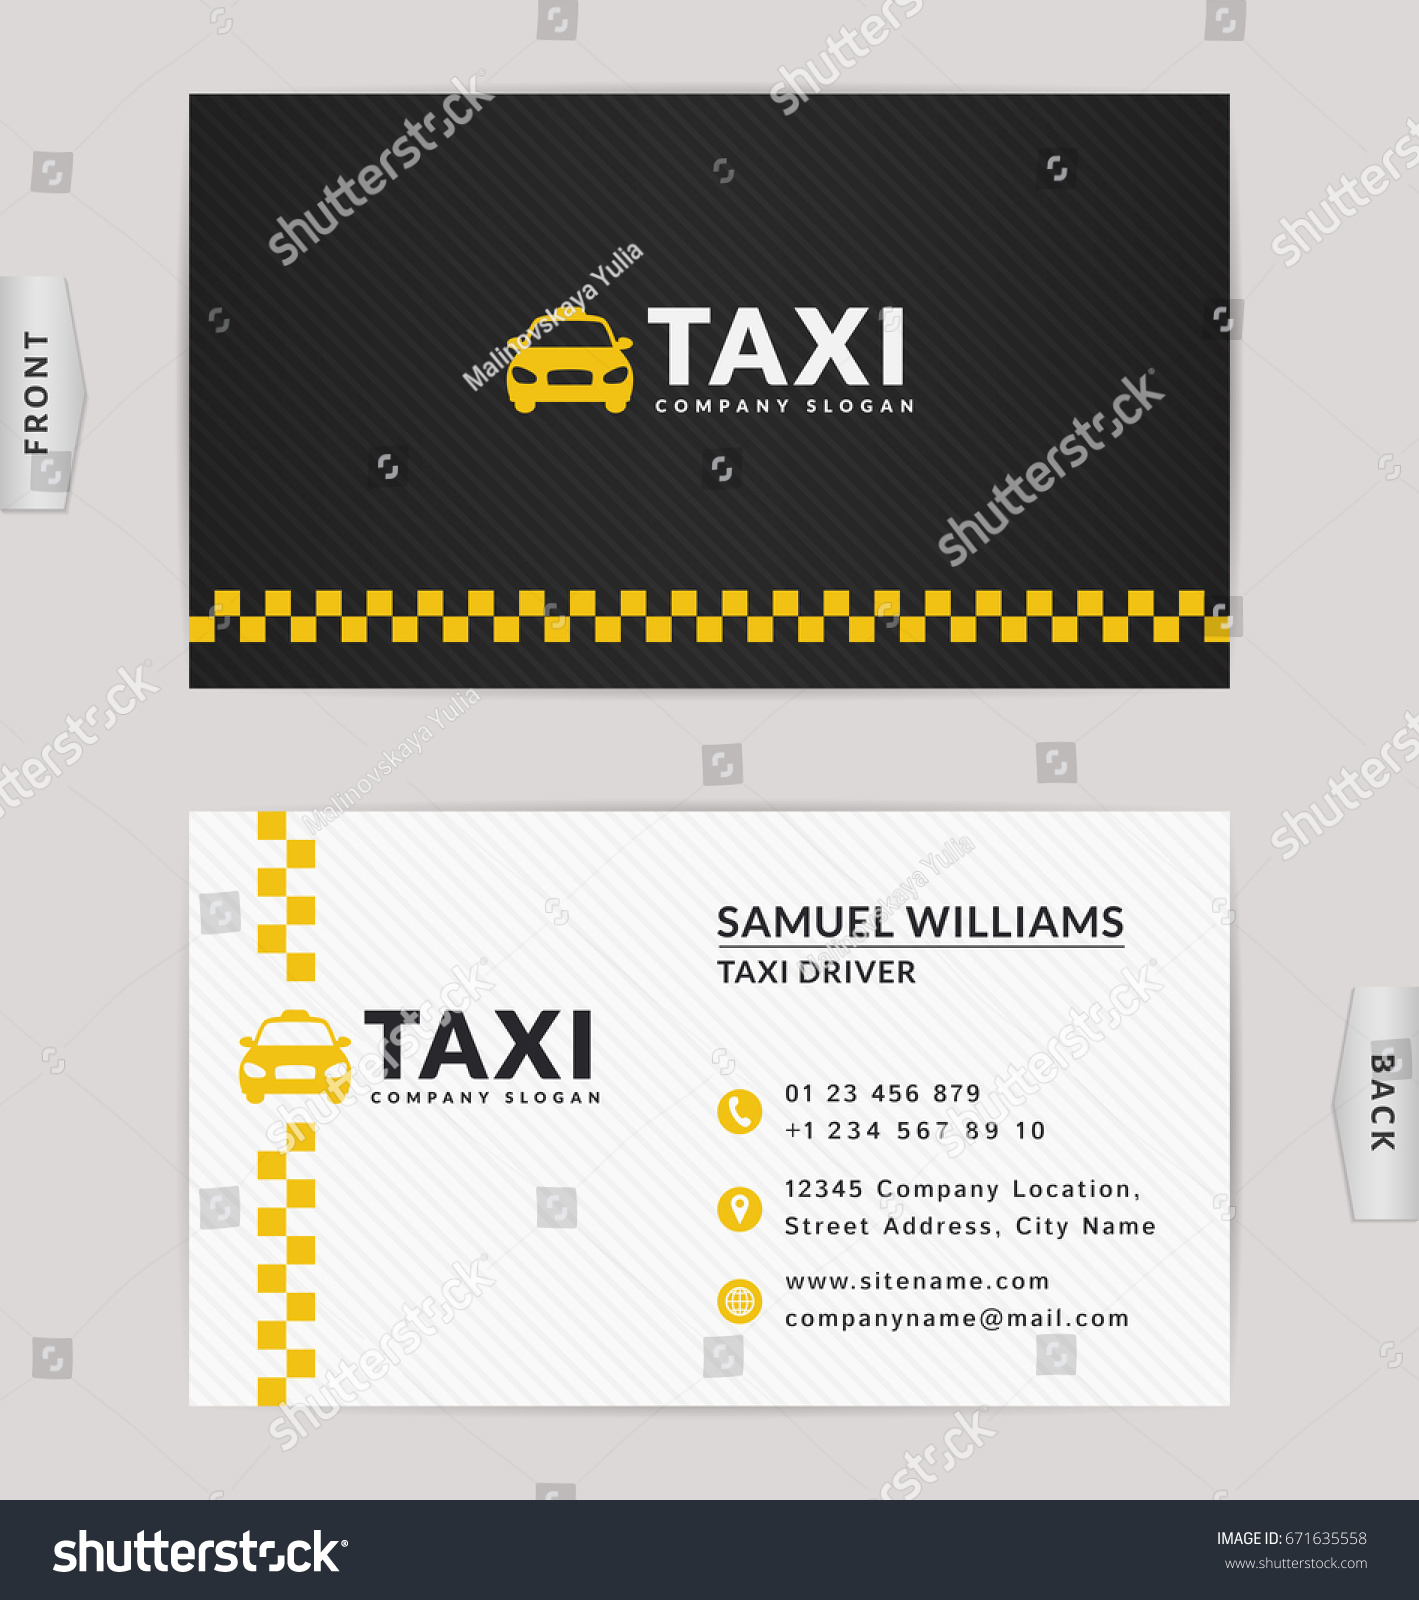 Business Card Design Black White Yellow Stock Vector 671635558 ...